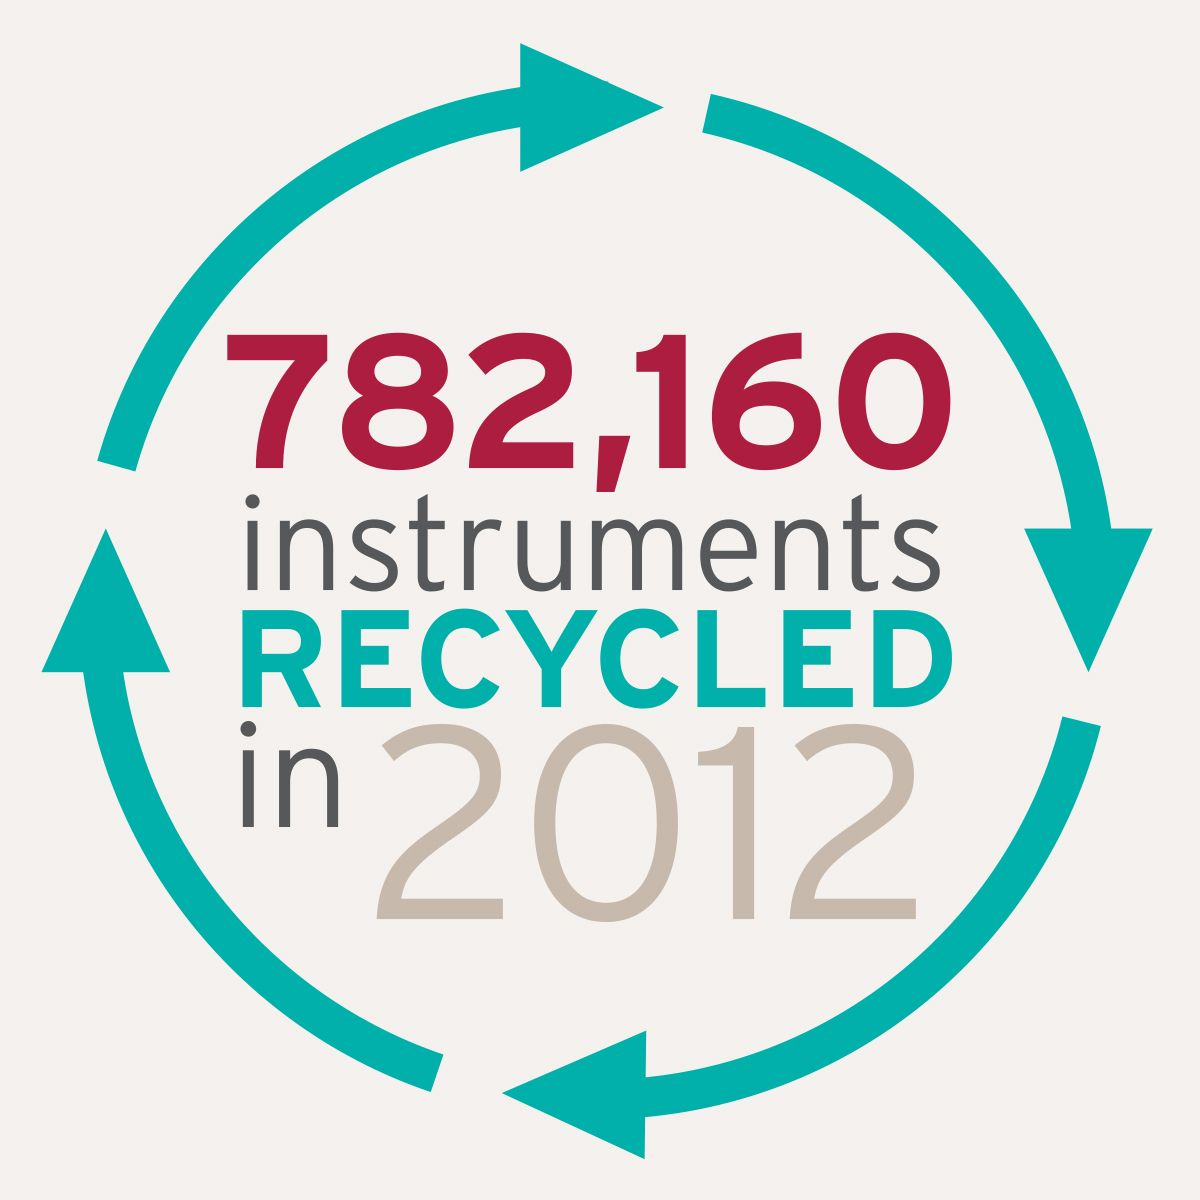 Over 780,000 instruments were recycled last year through our